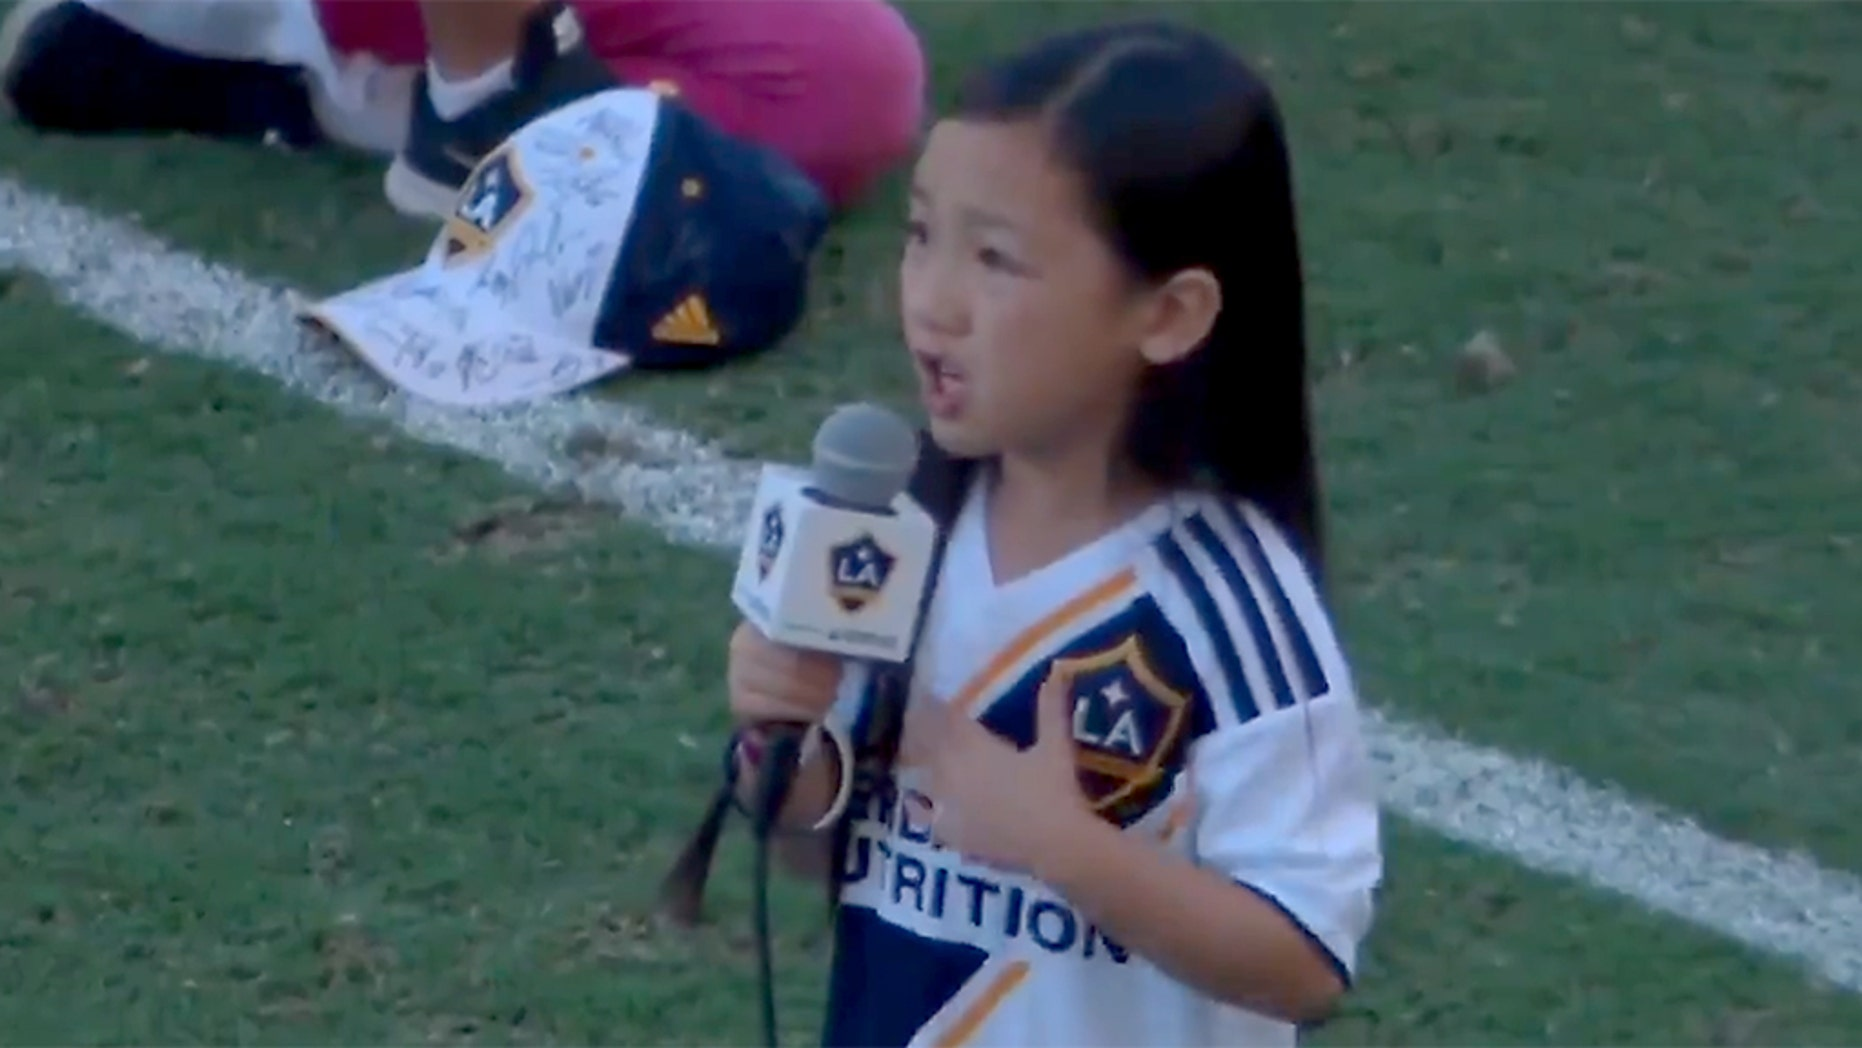 A now-viral video shows Malea Emma Tjandrawidjaja singing the national anthem before a LA Galaxy game on Sunday.